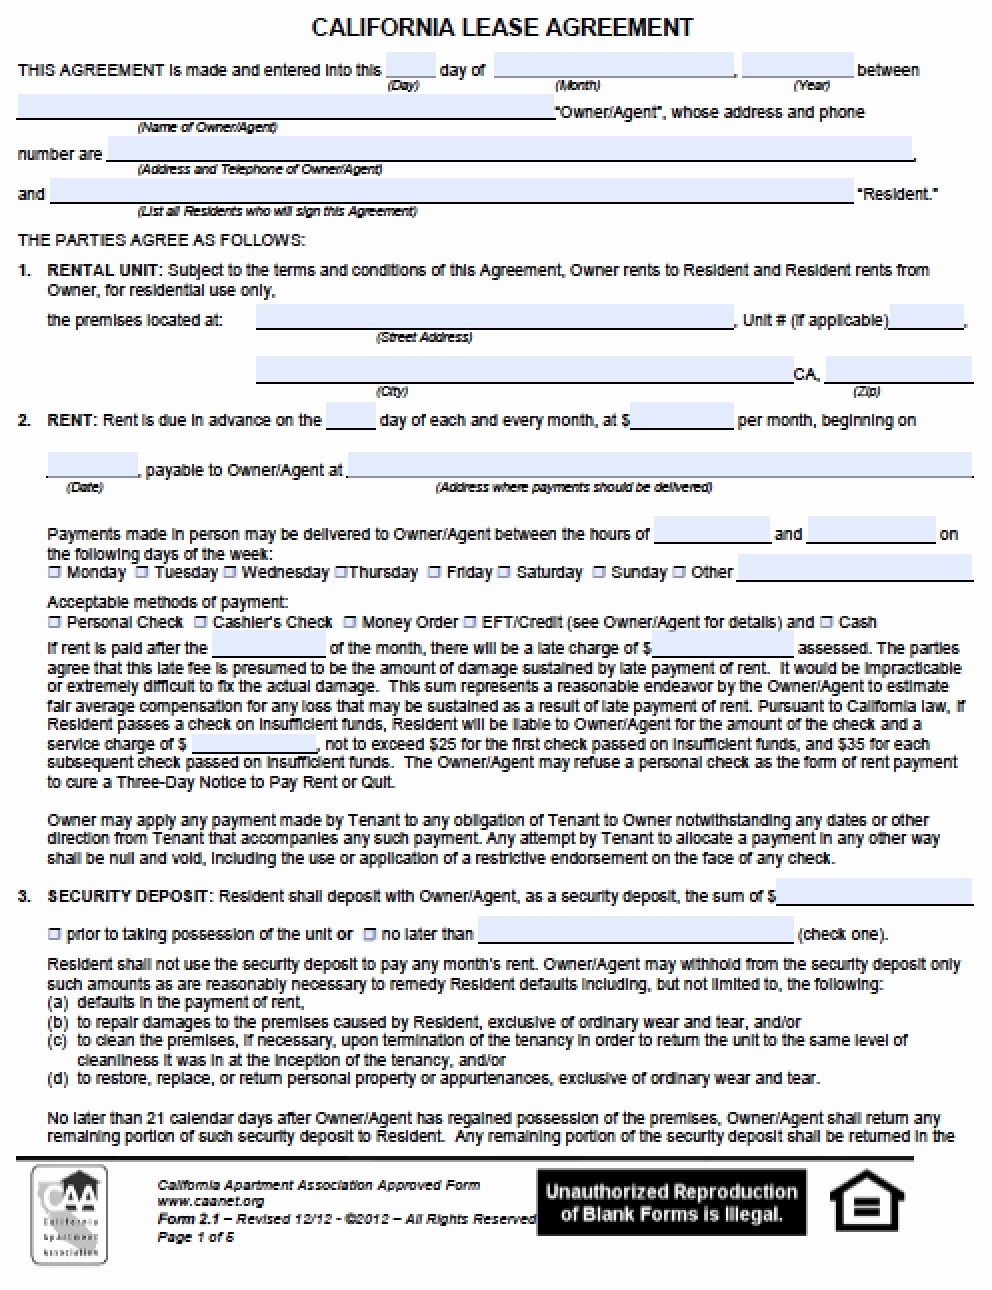 Free Rental Agreement Pdf Awesome Free California Residential Lease Agreement Pdf